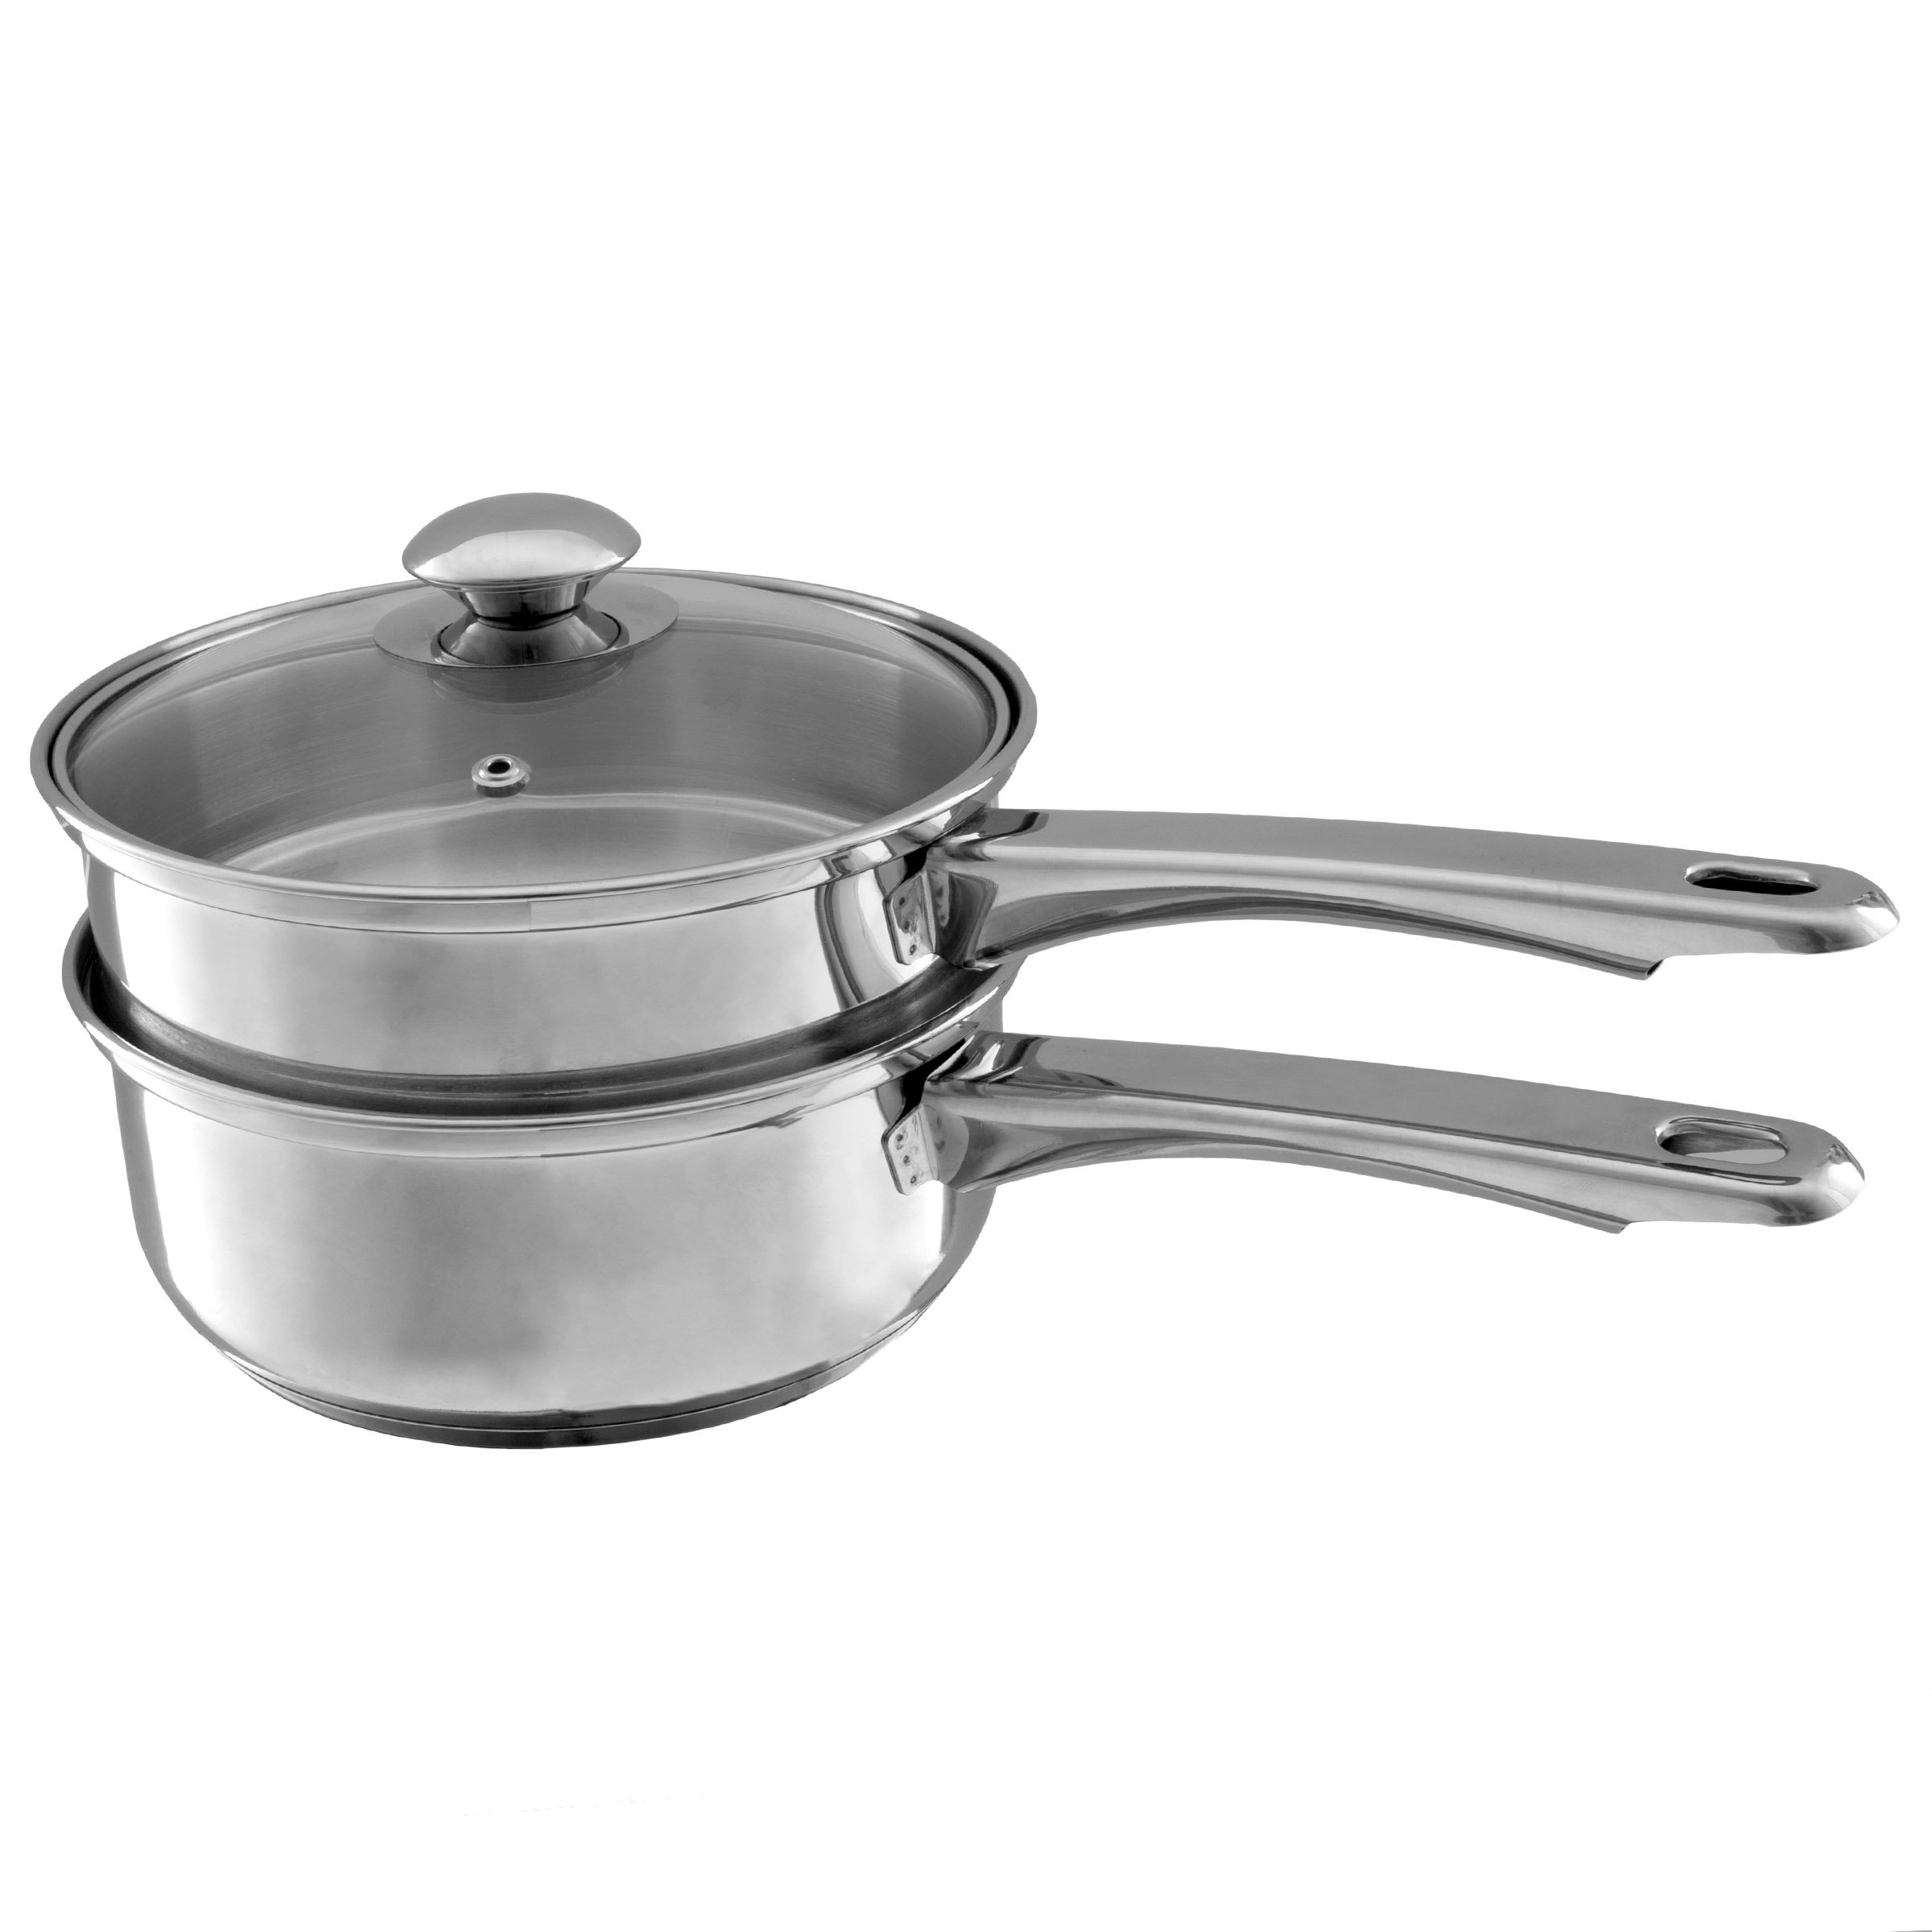 Stainless Steel 6 Cup Double Boiler – 1.5 Quart Saucepan 2-in-1 Combo with Vented Glass Lid- Kitchen Cookware with Measurements by Classic Cuisine by Classic Cuisine (Image #6)